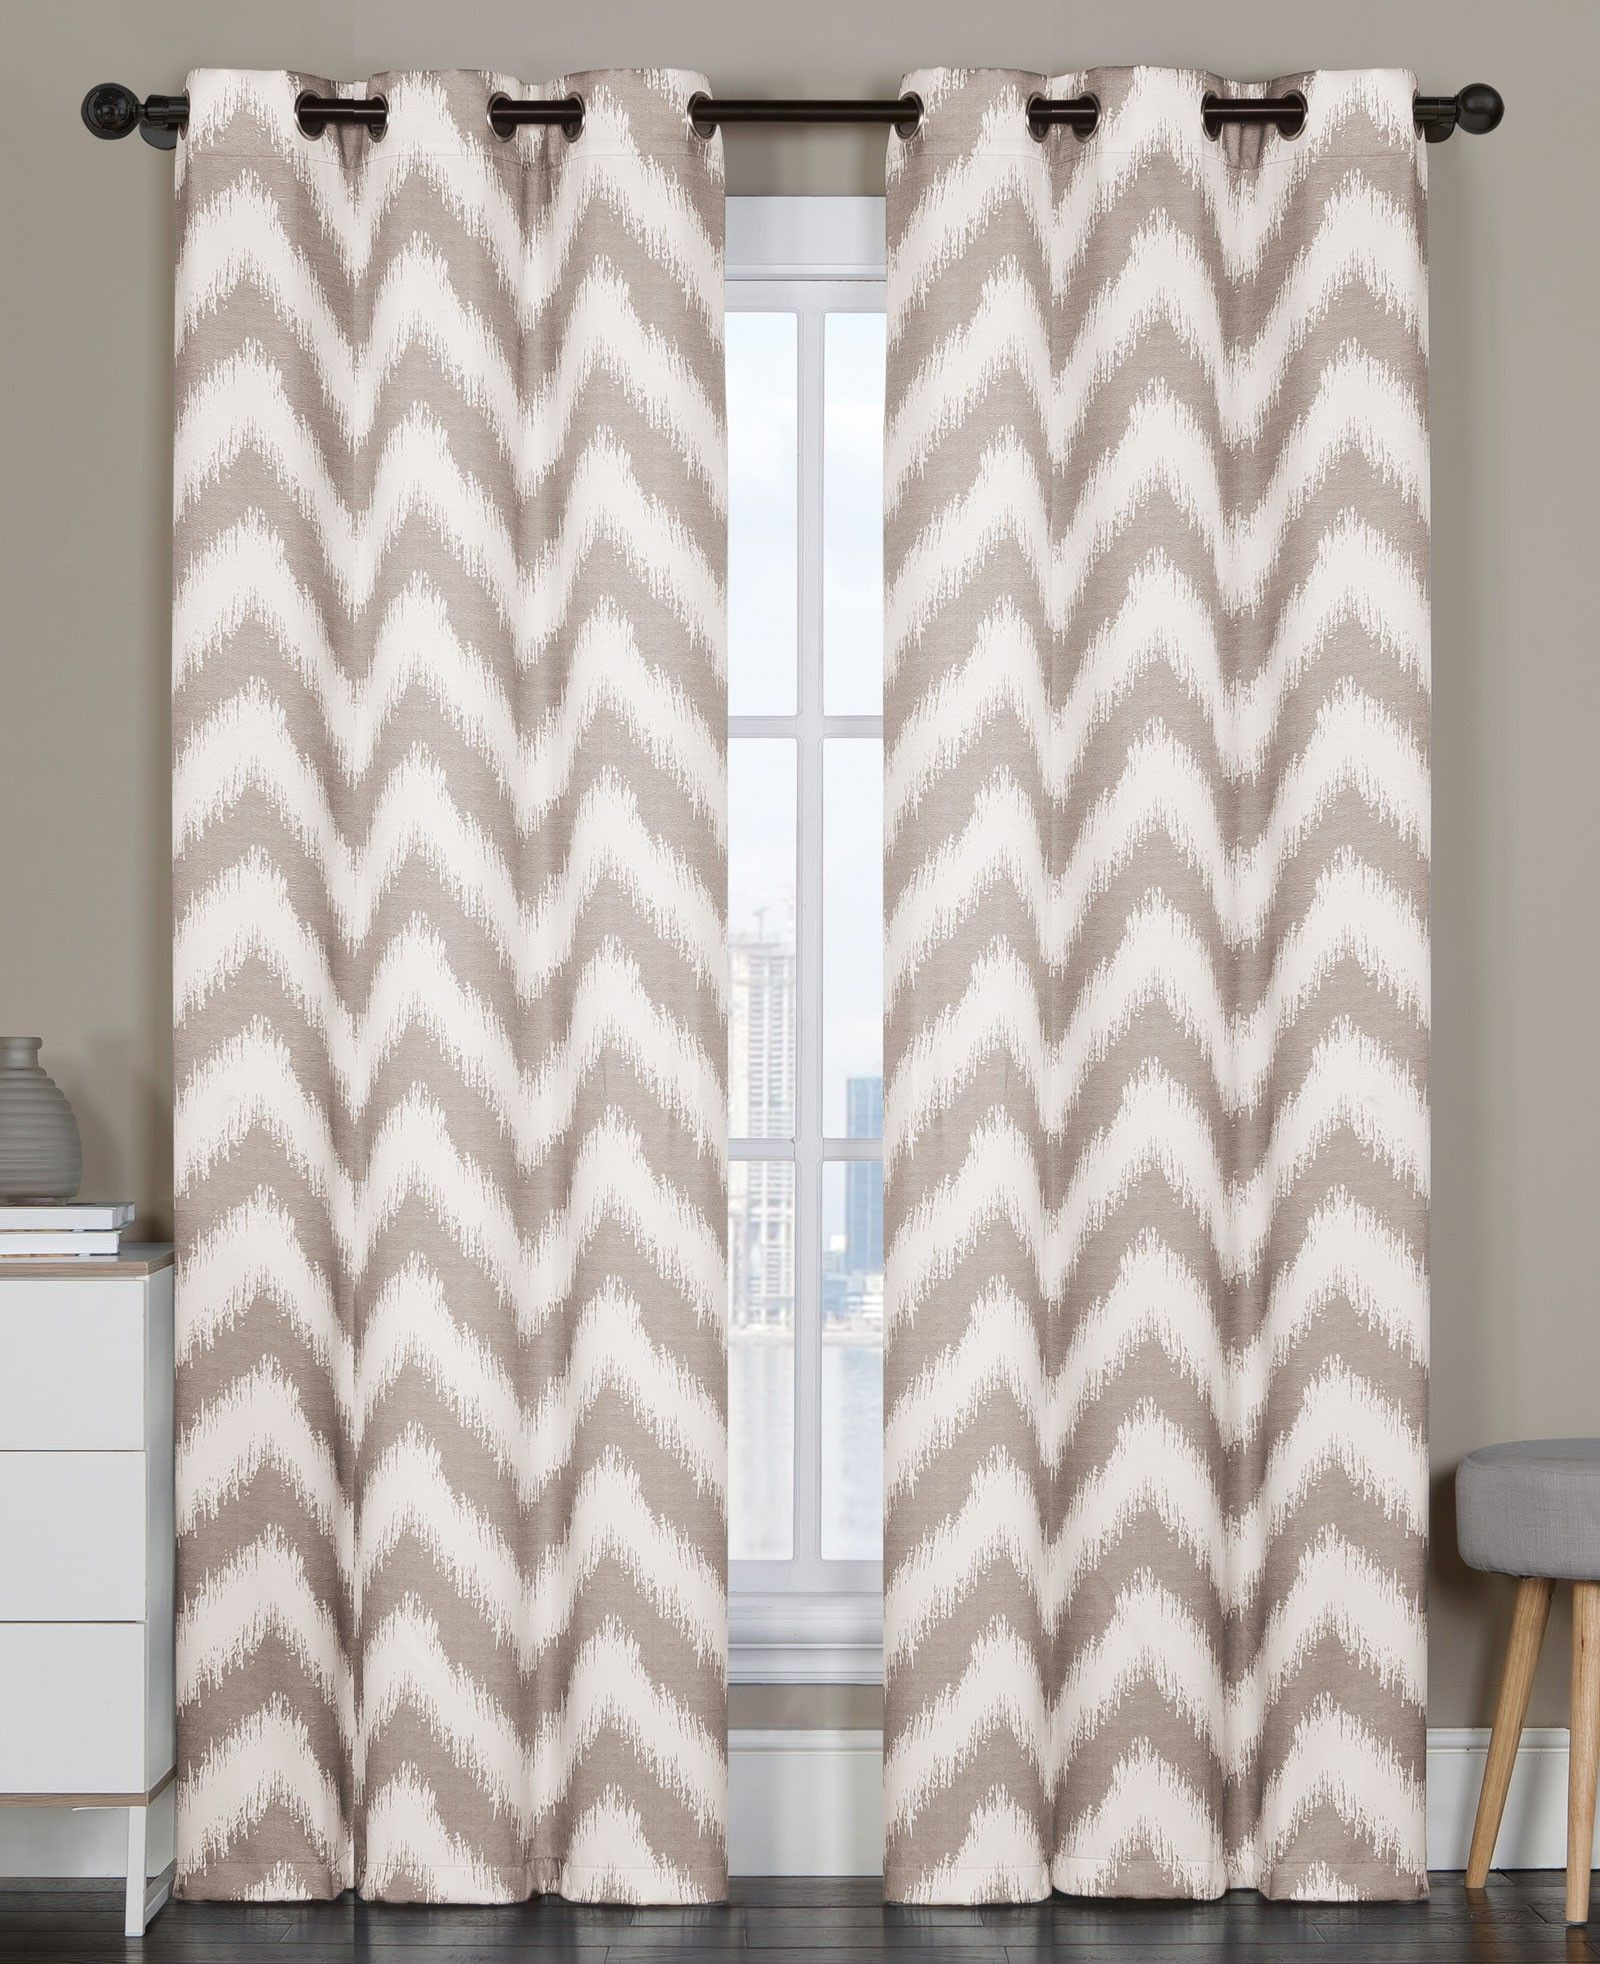 Vcny Athens Blackout Window Curtains Grommet Thermal 2 Panel Set Taupe Chevron 84 Length Discontinued No Longer Available Curtains Drapes Grommet Grommet Curtains